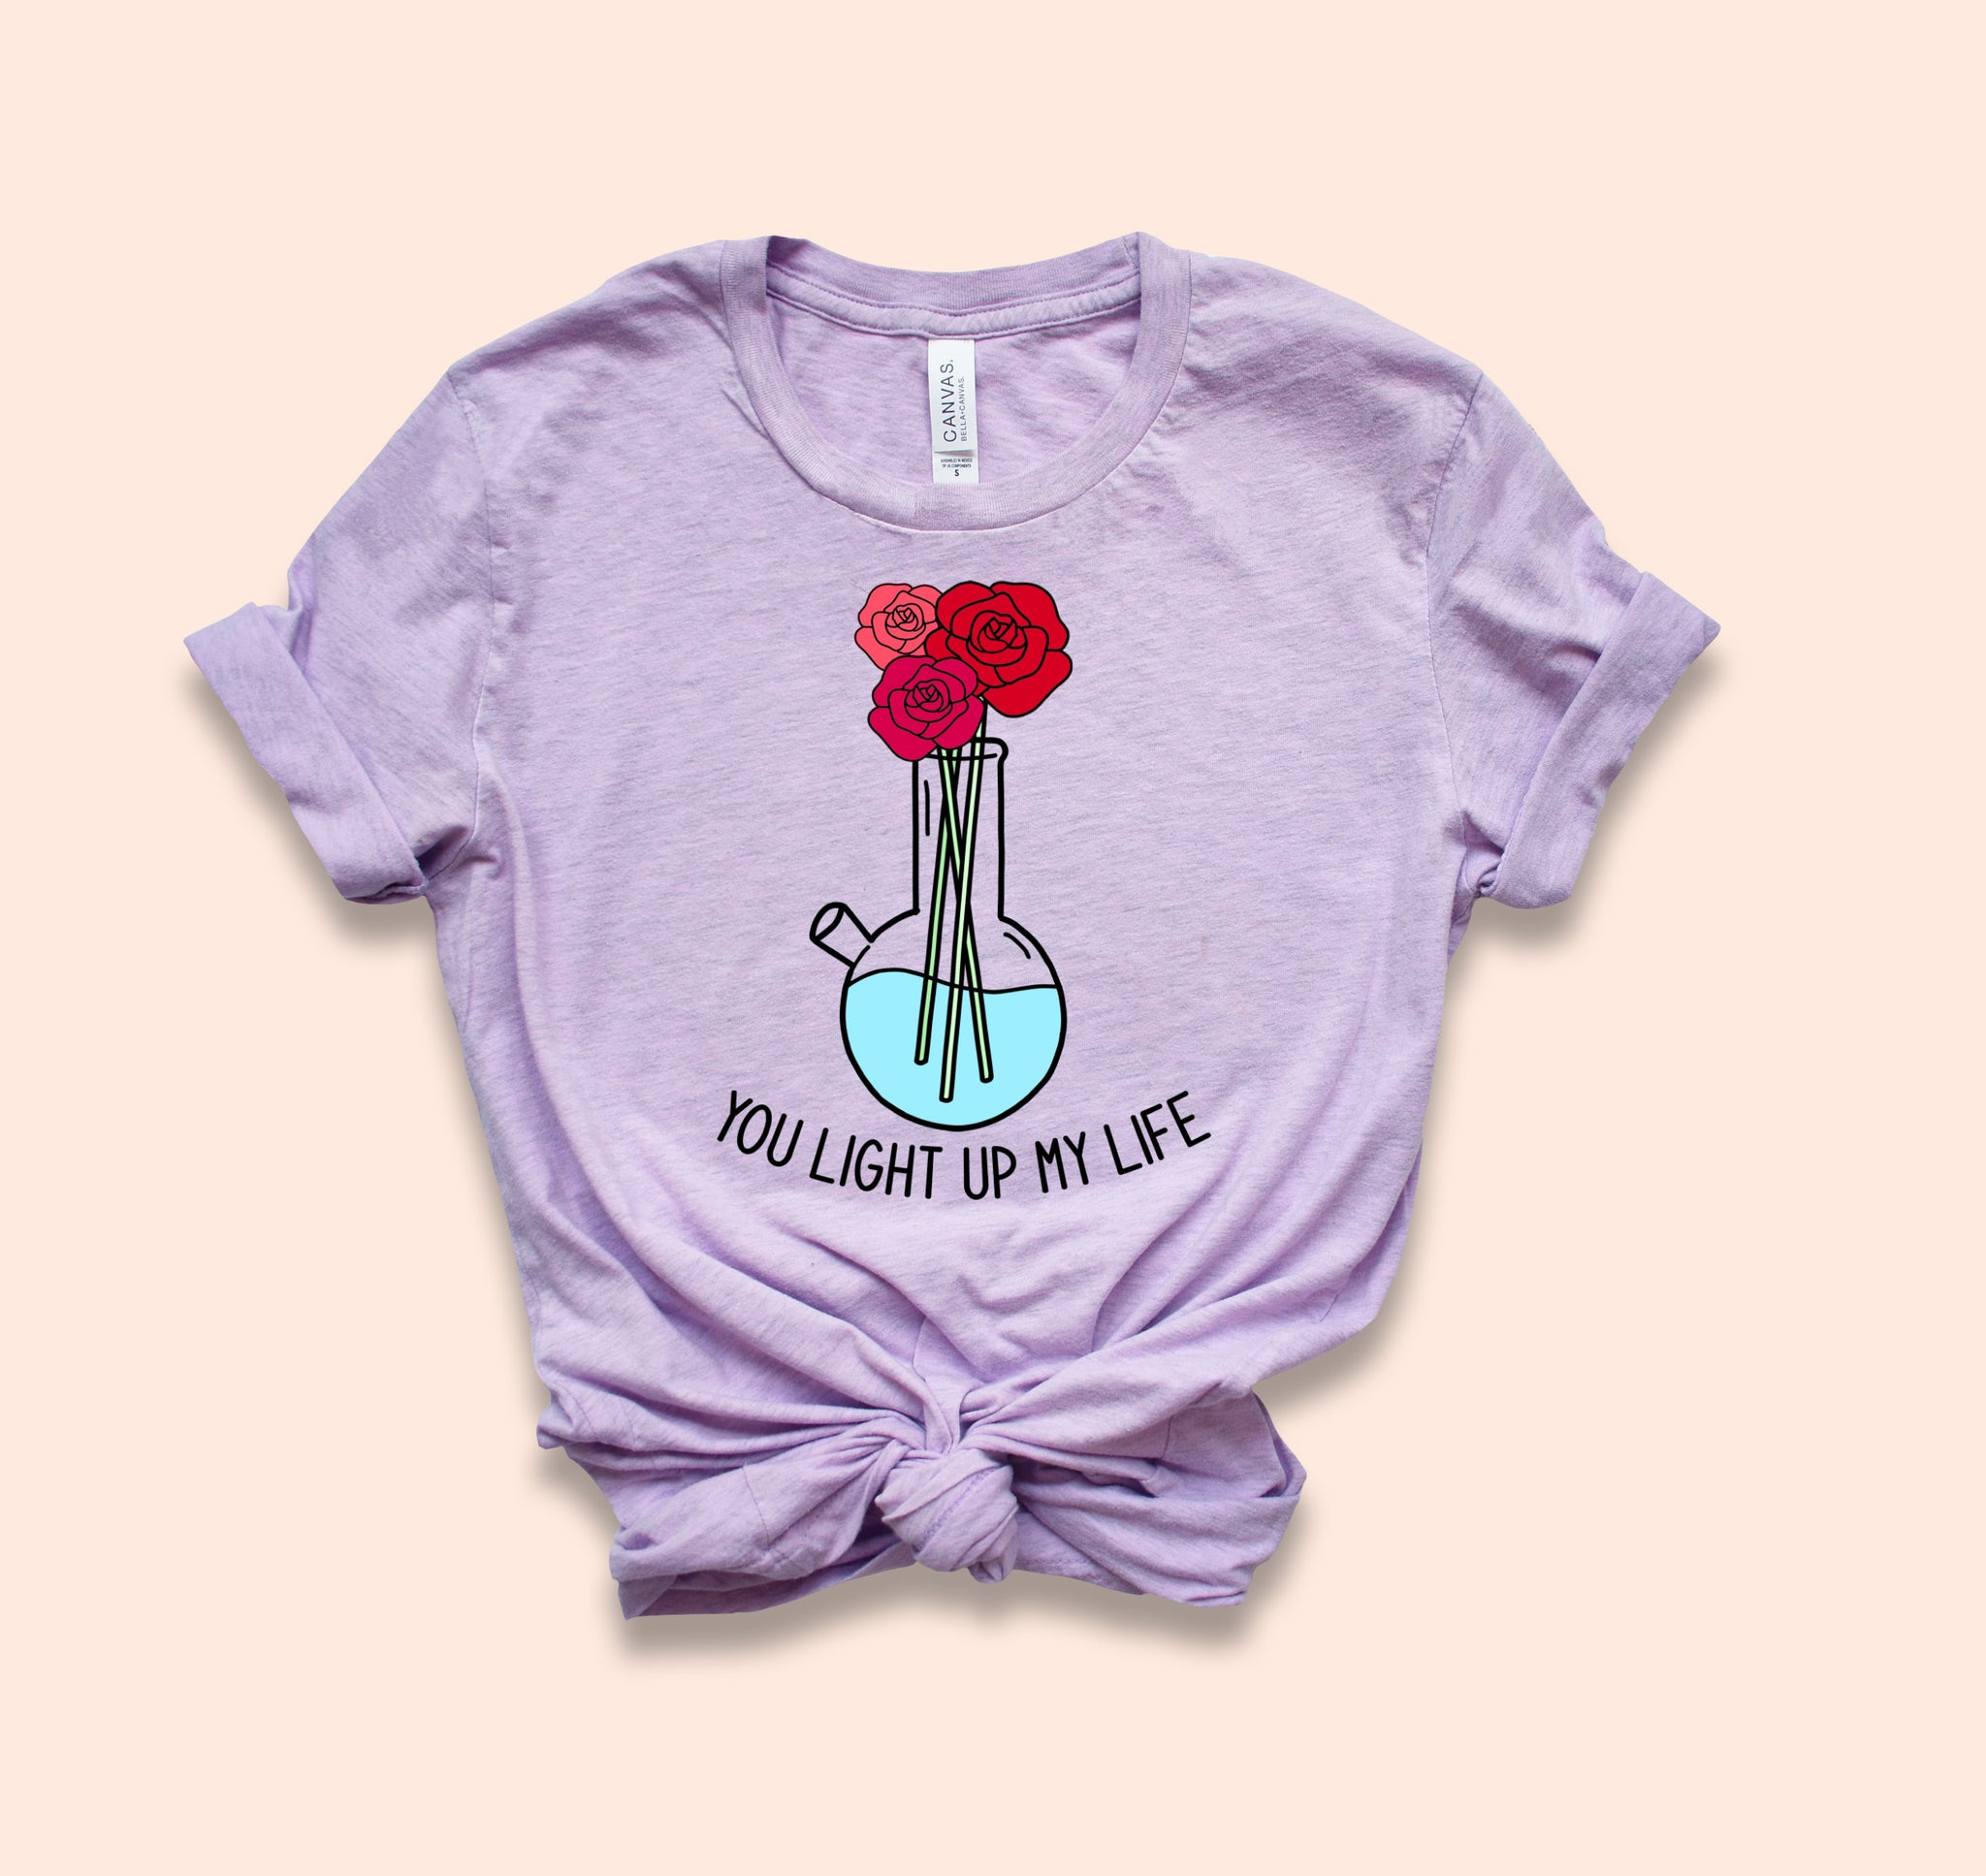 Heather lilac shirt with a bong and flowers that says you light up my life - HighCiti